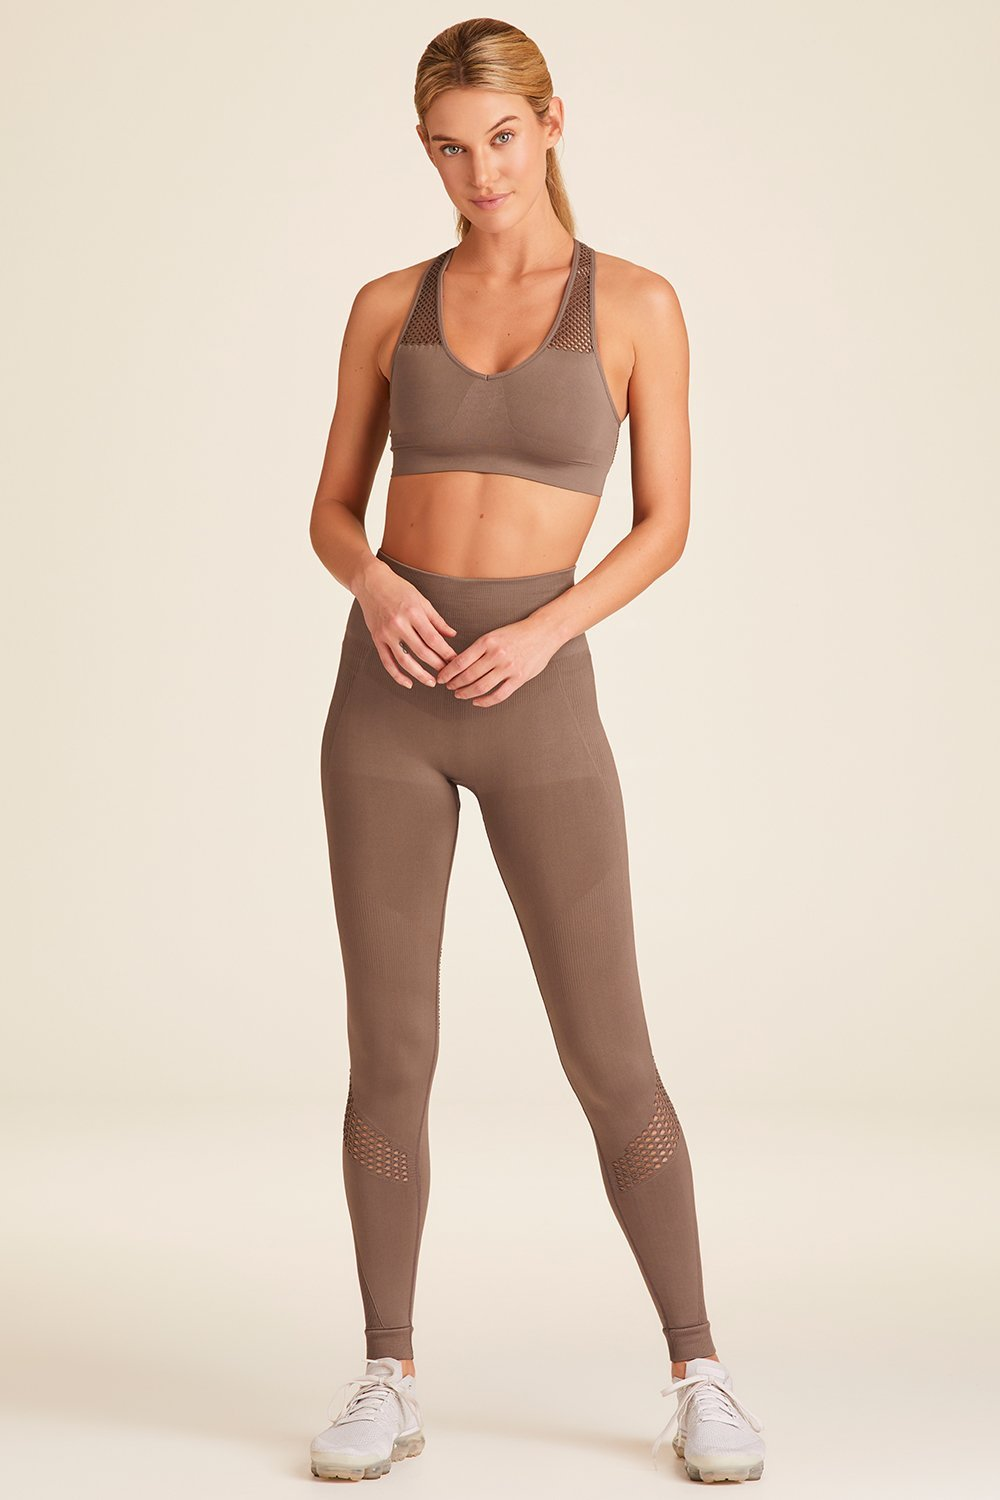 Click Now to Shop the Seamless Set in Cocoa